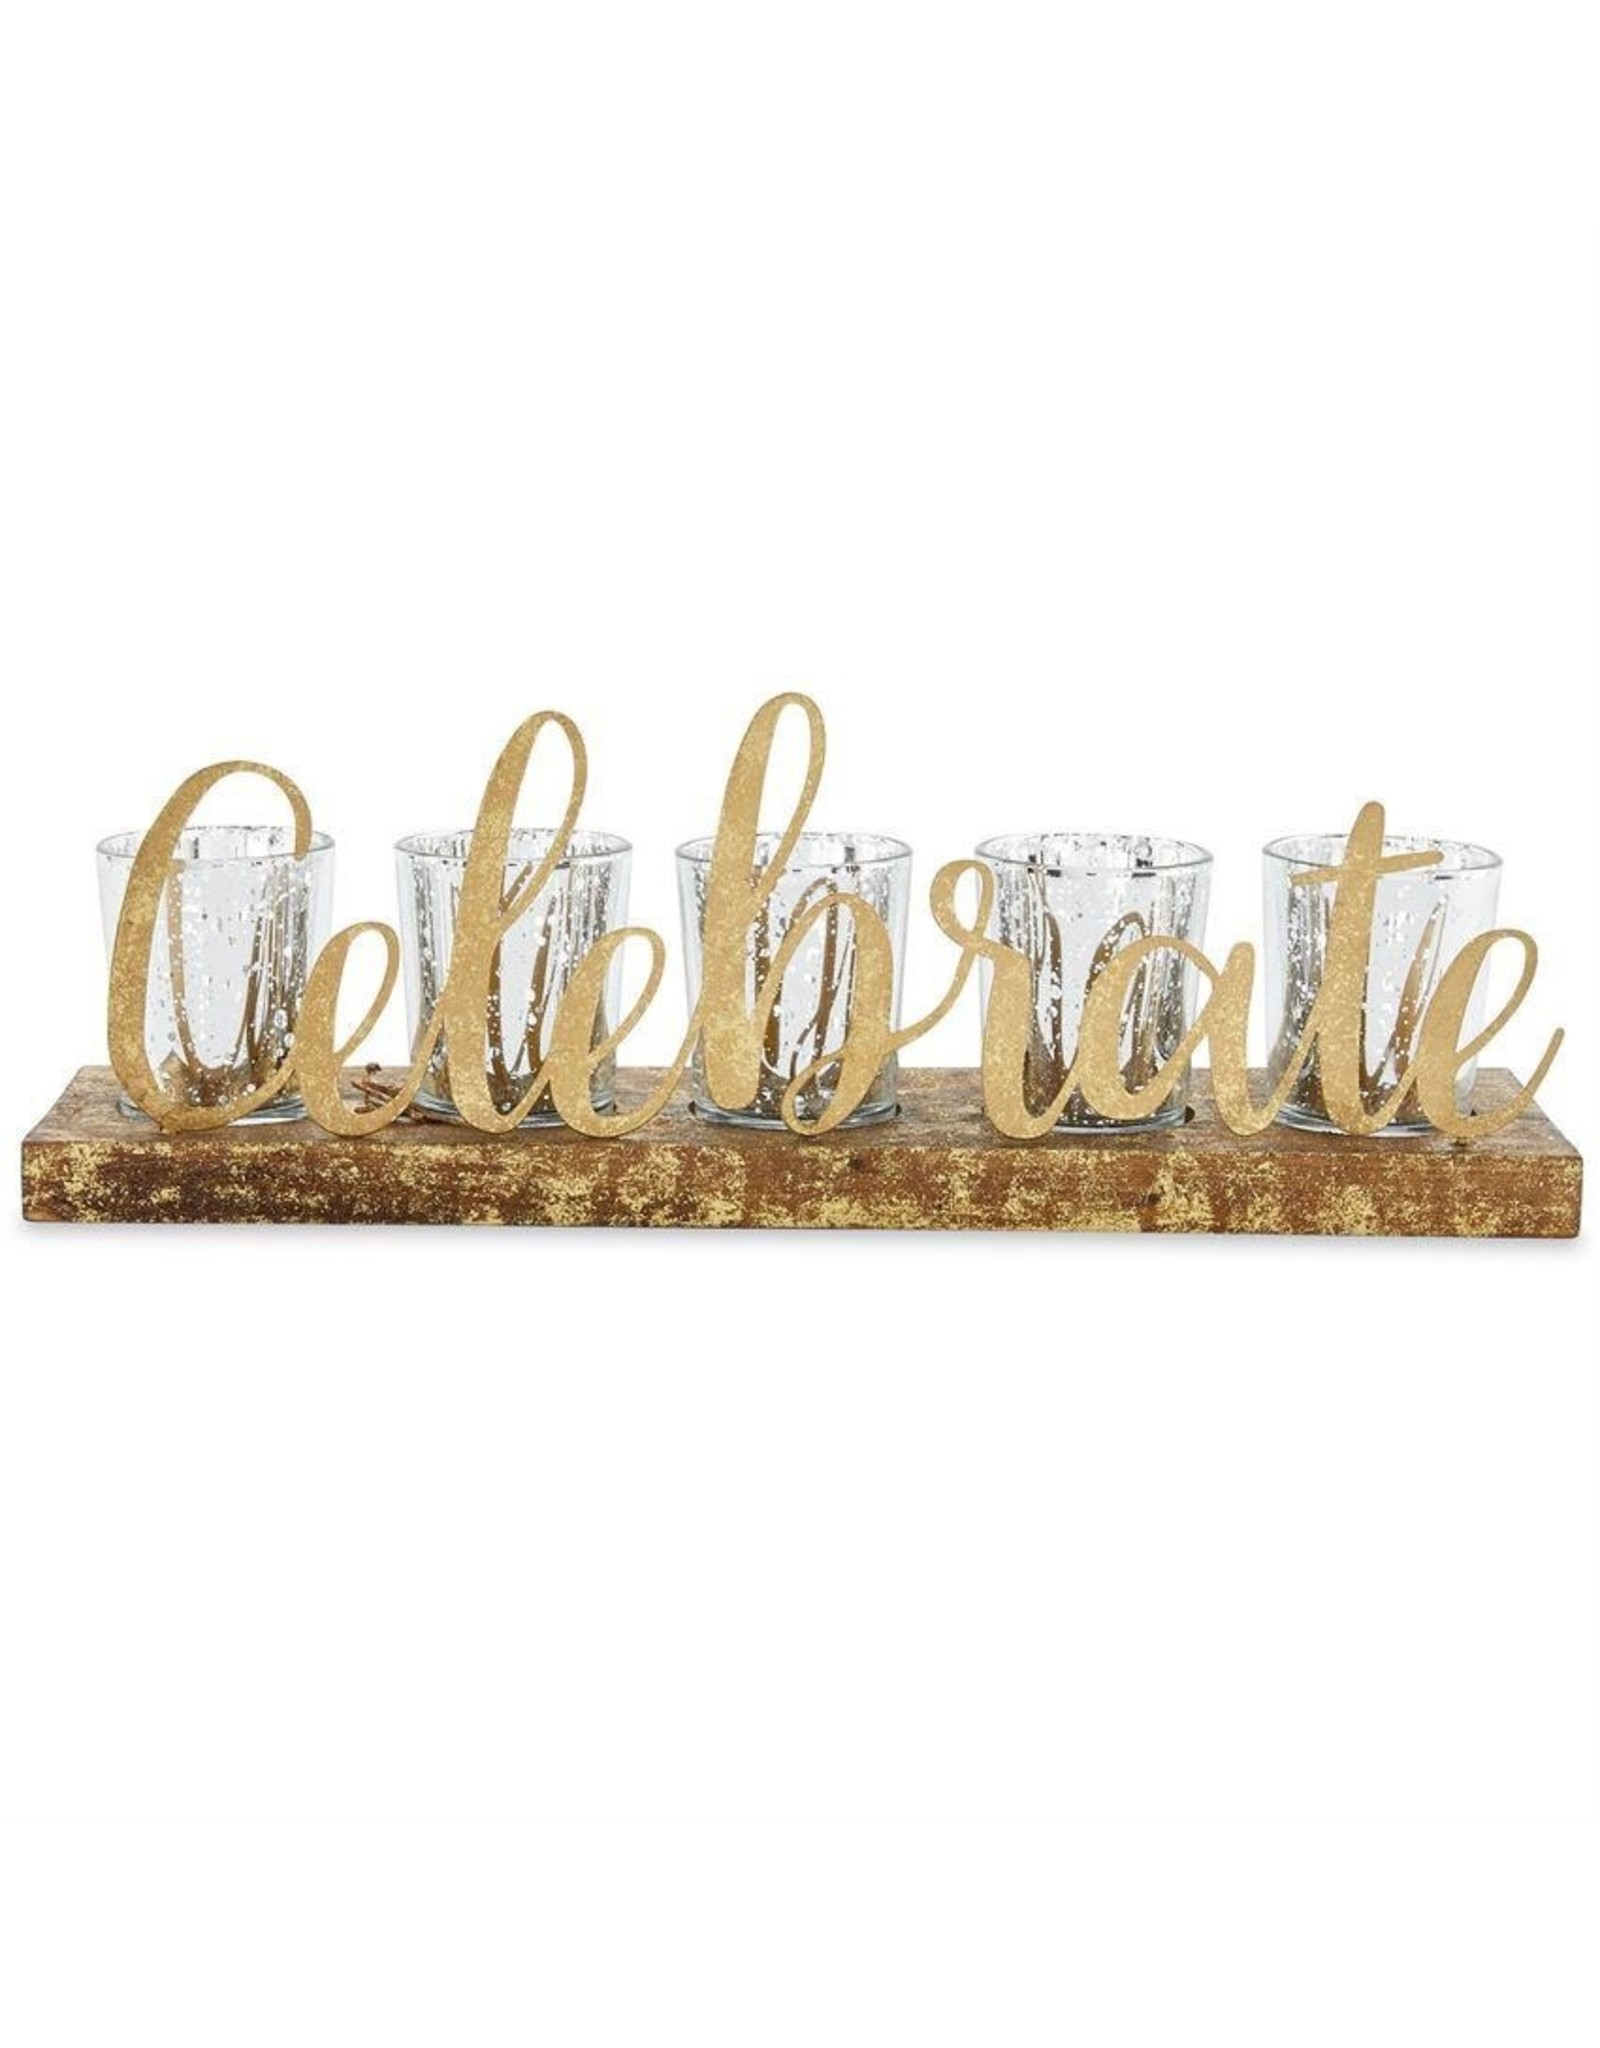 Mud Pie Gold Celebrate 5 Votive Holder 14x4.75x3.5 Inch